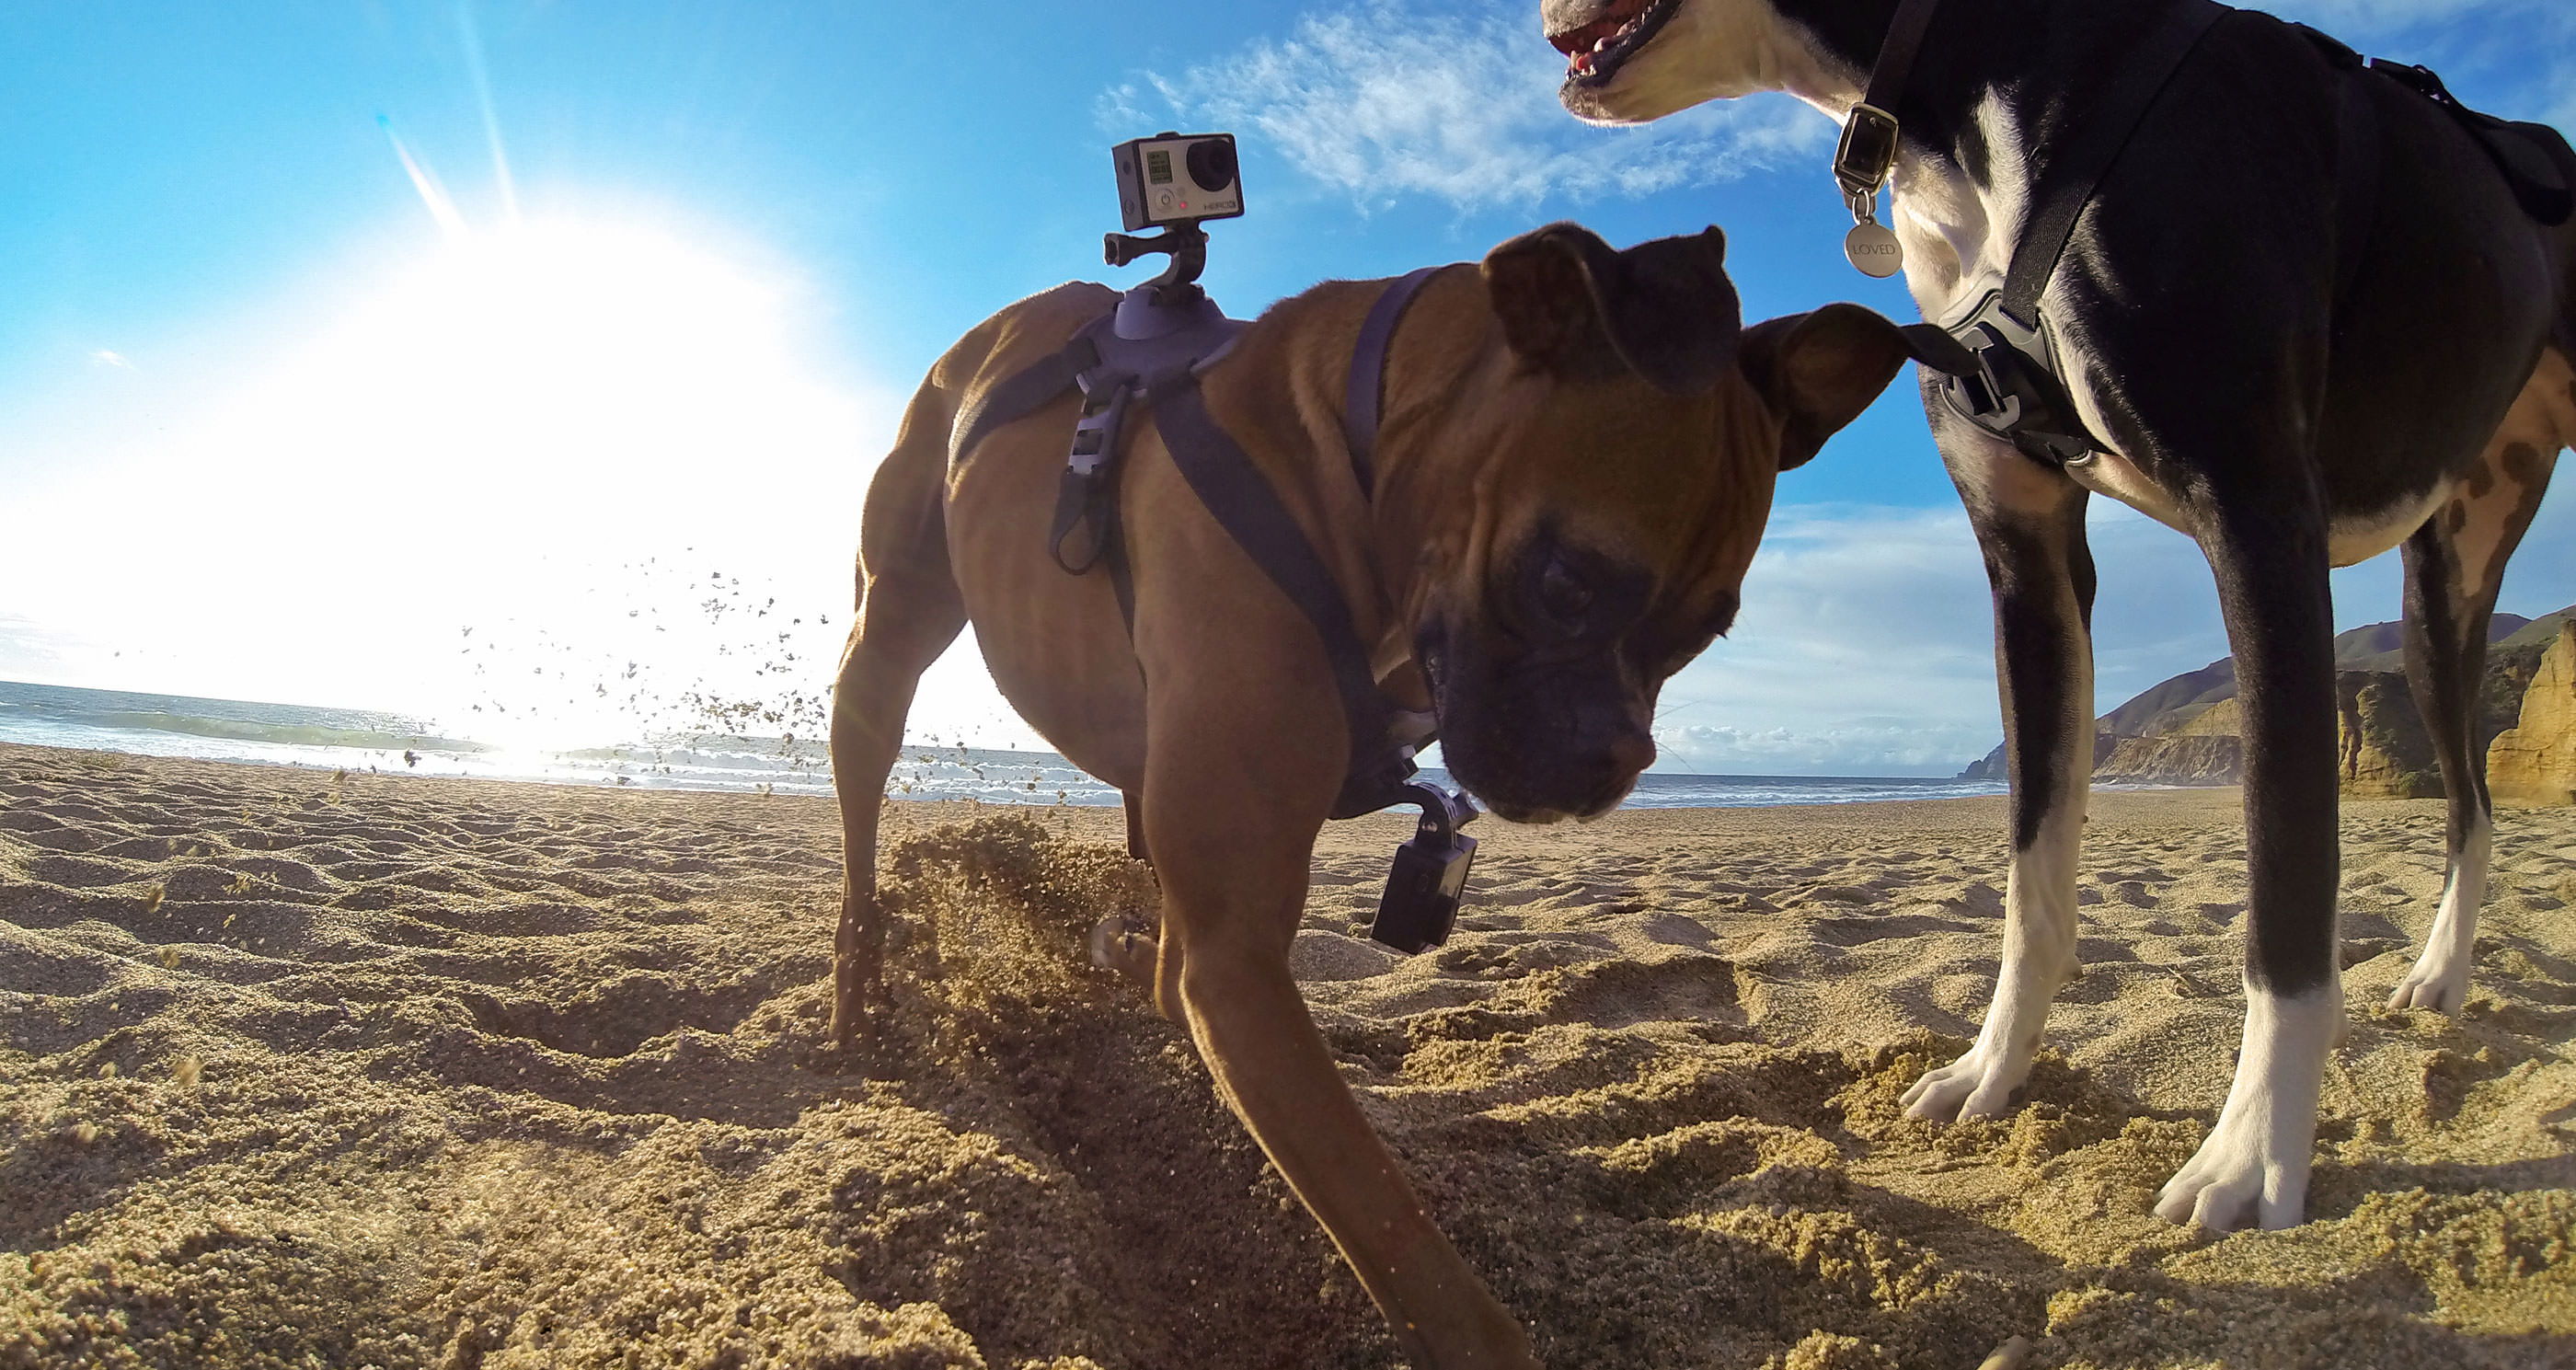 GoPro slashes workforce by 270 amidst continuing retrenchment